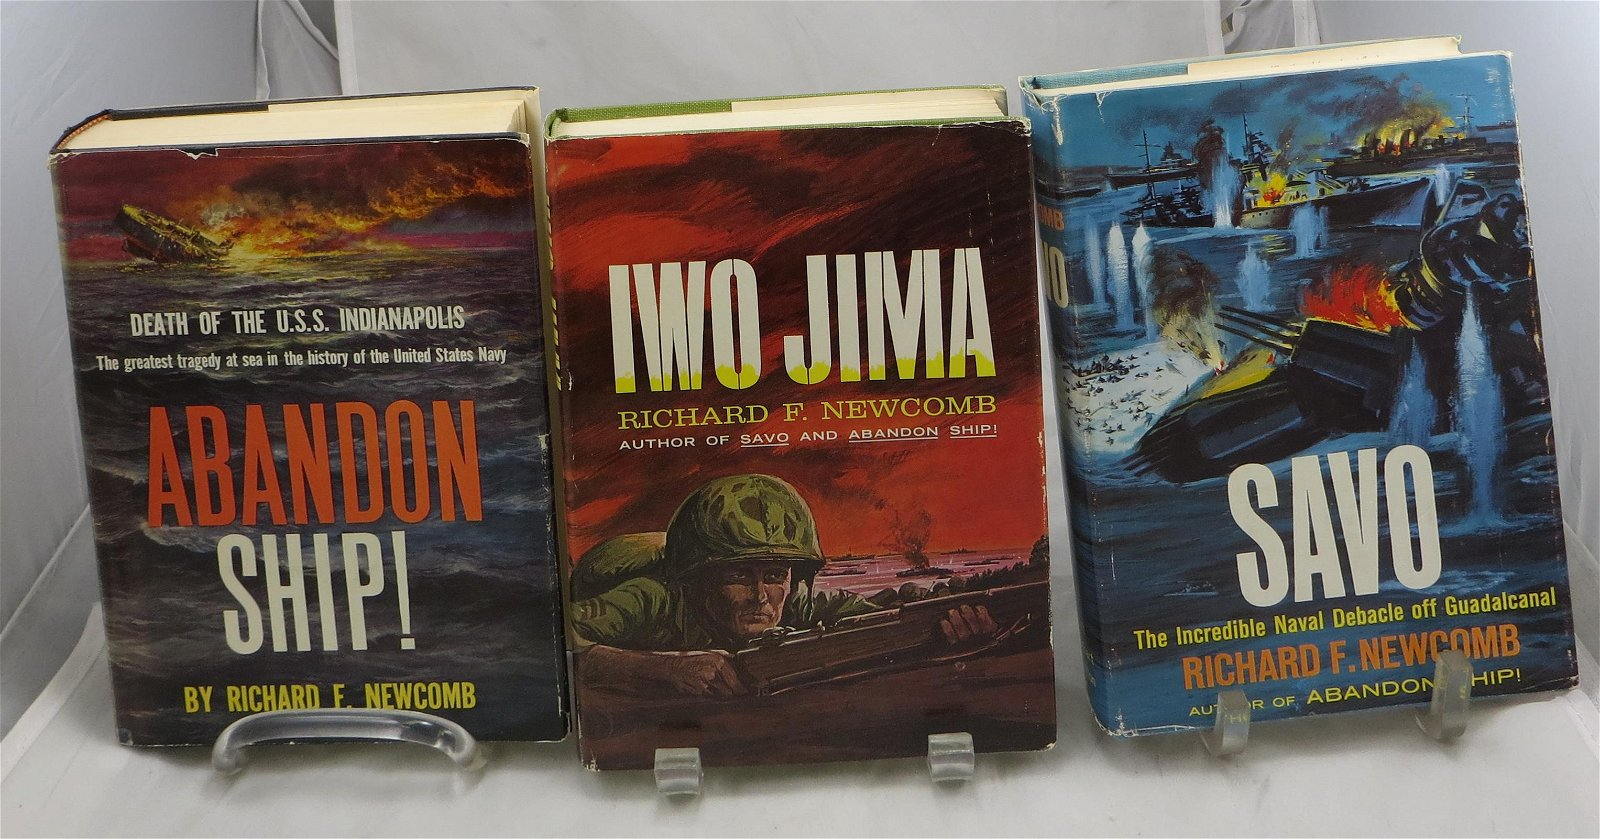 (3) WW2 NAVAL BOOKS BY RICHARD NEWCOMB, SIGNED